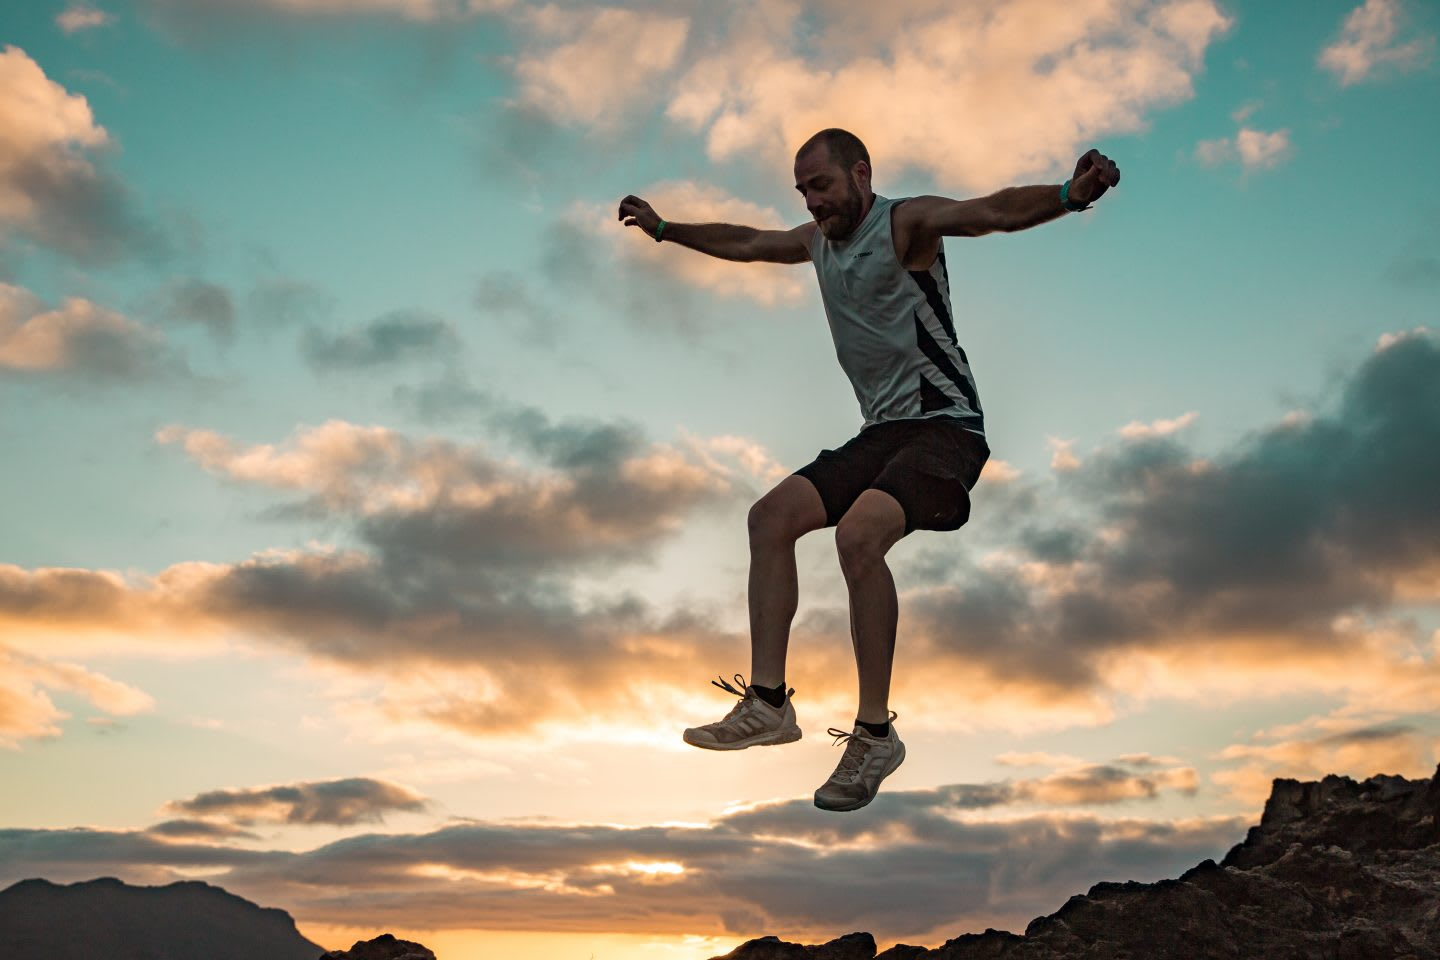 A man jumps for joy wearing running clothes in a sunset. running, sunset, joy, motivation, happy, concentration